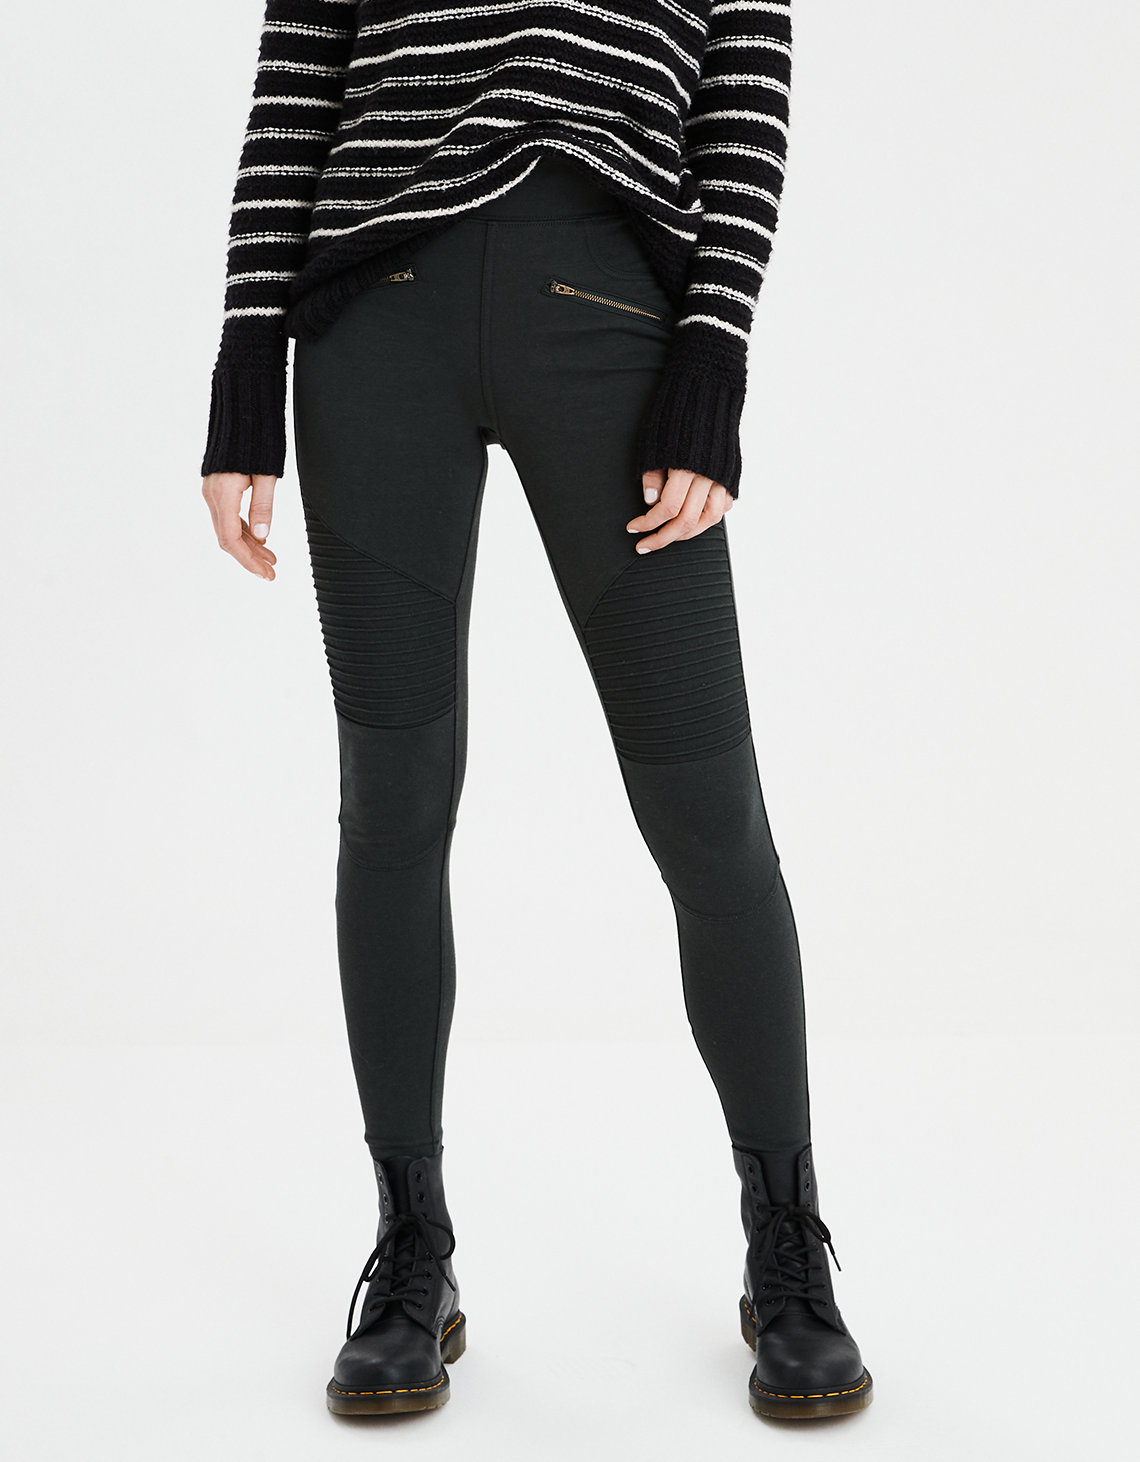 20db812ea78b1 AE Pull-On High-Waisted Jegging